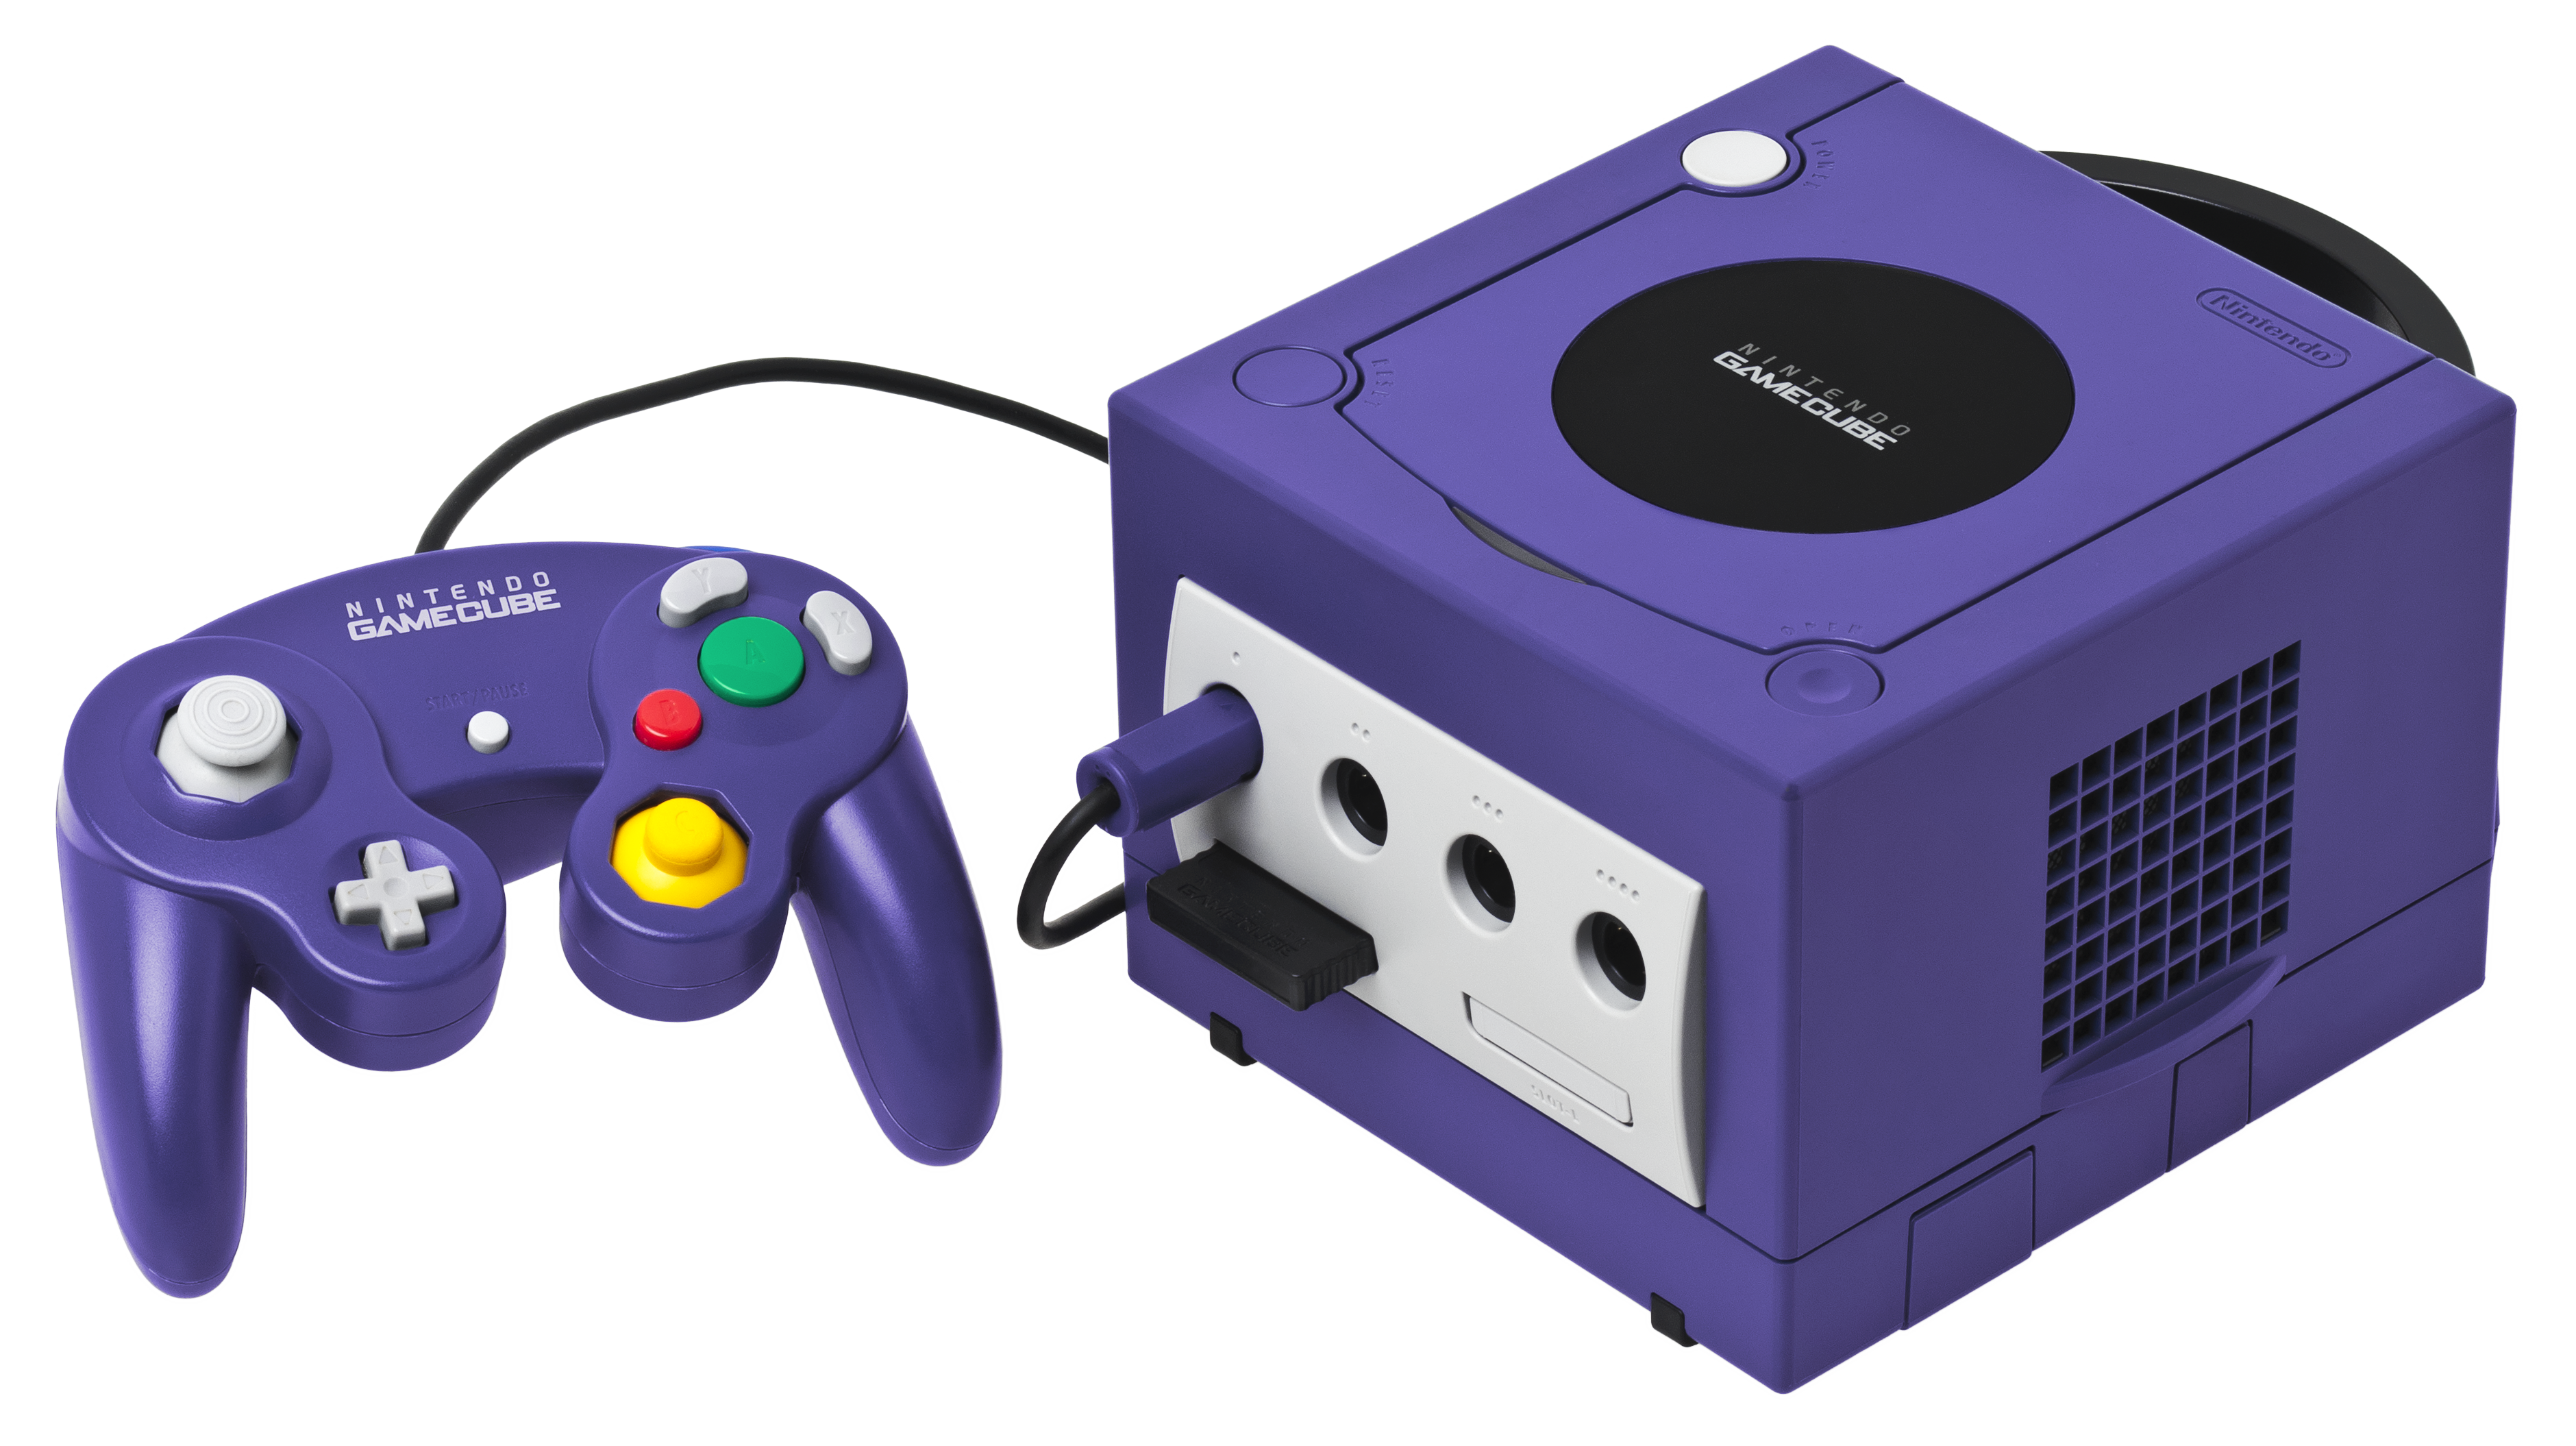 nintendo gamecube usa roms games and isos to download for free